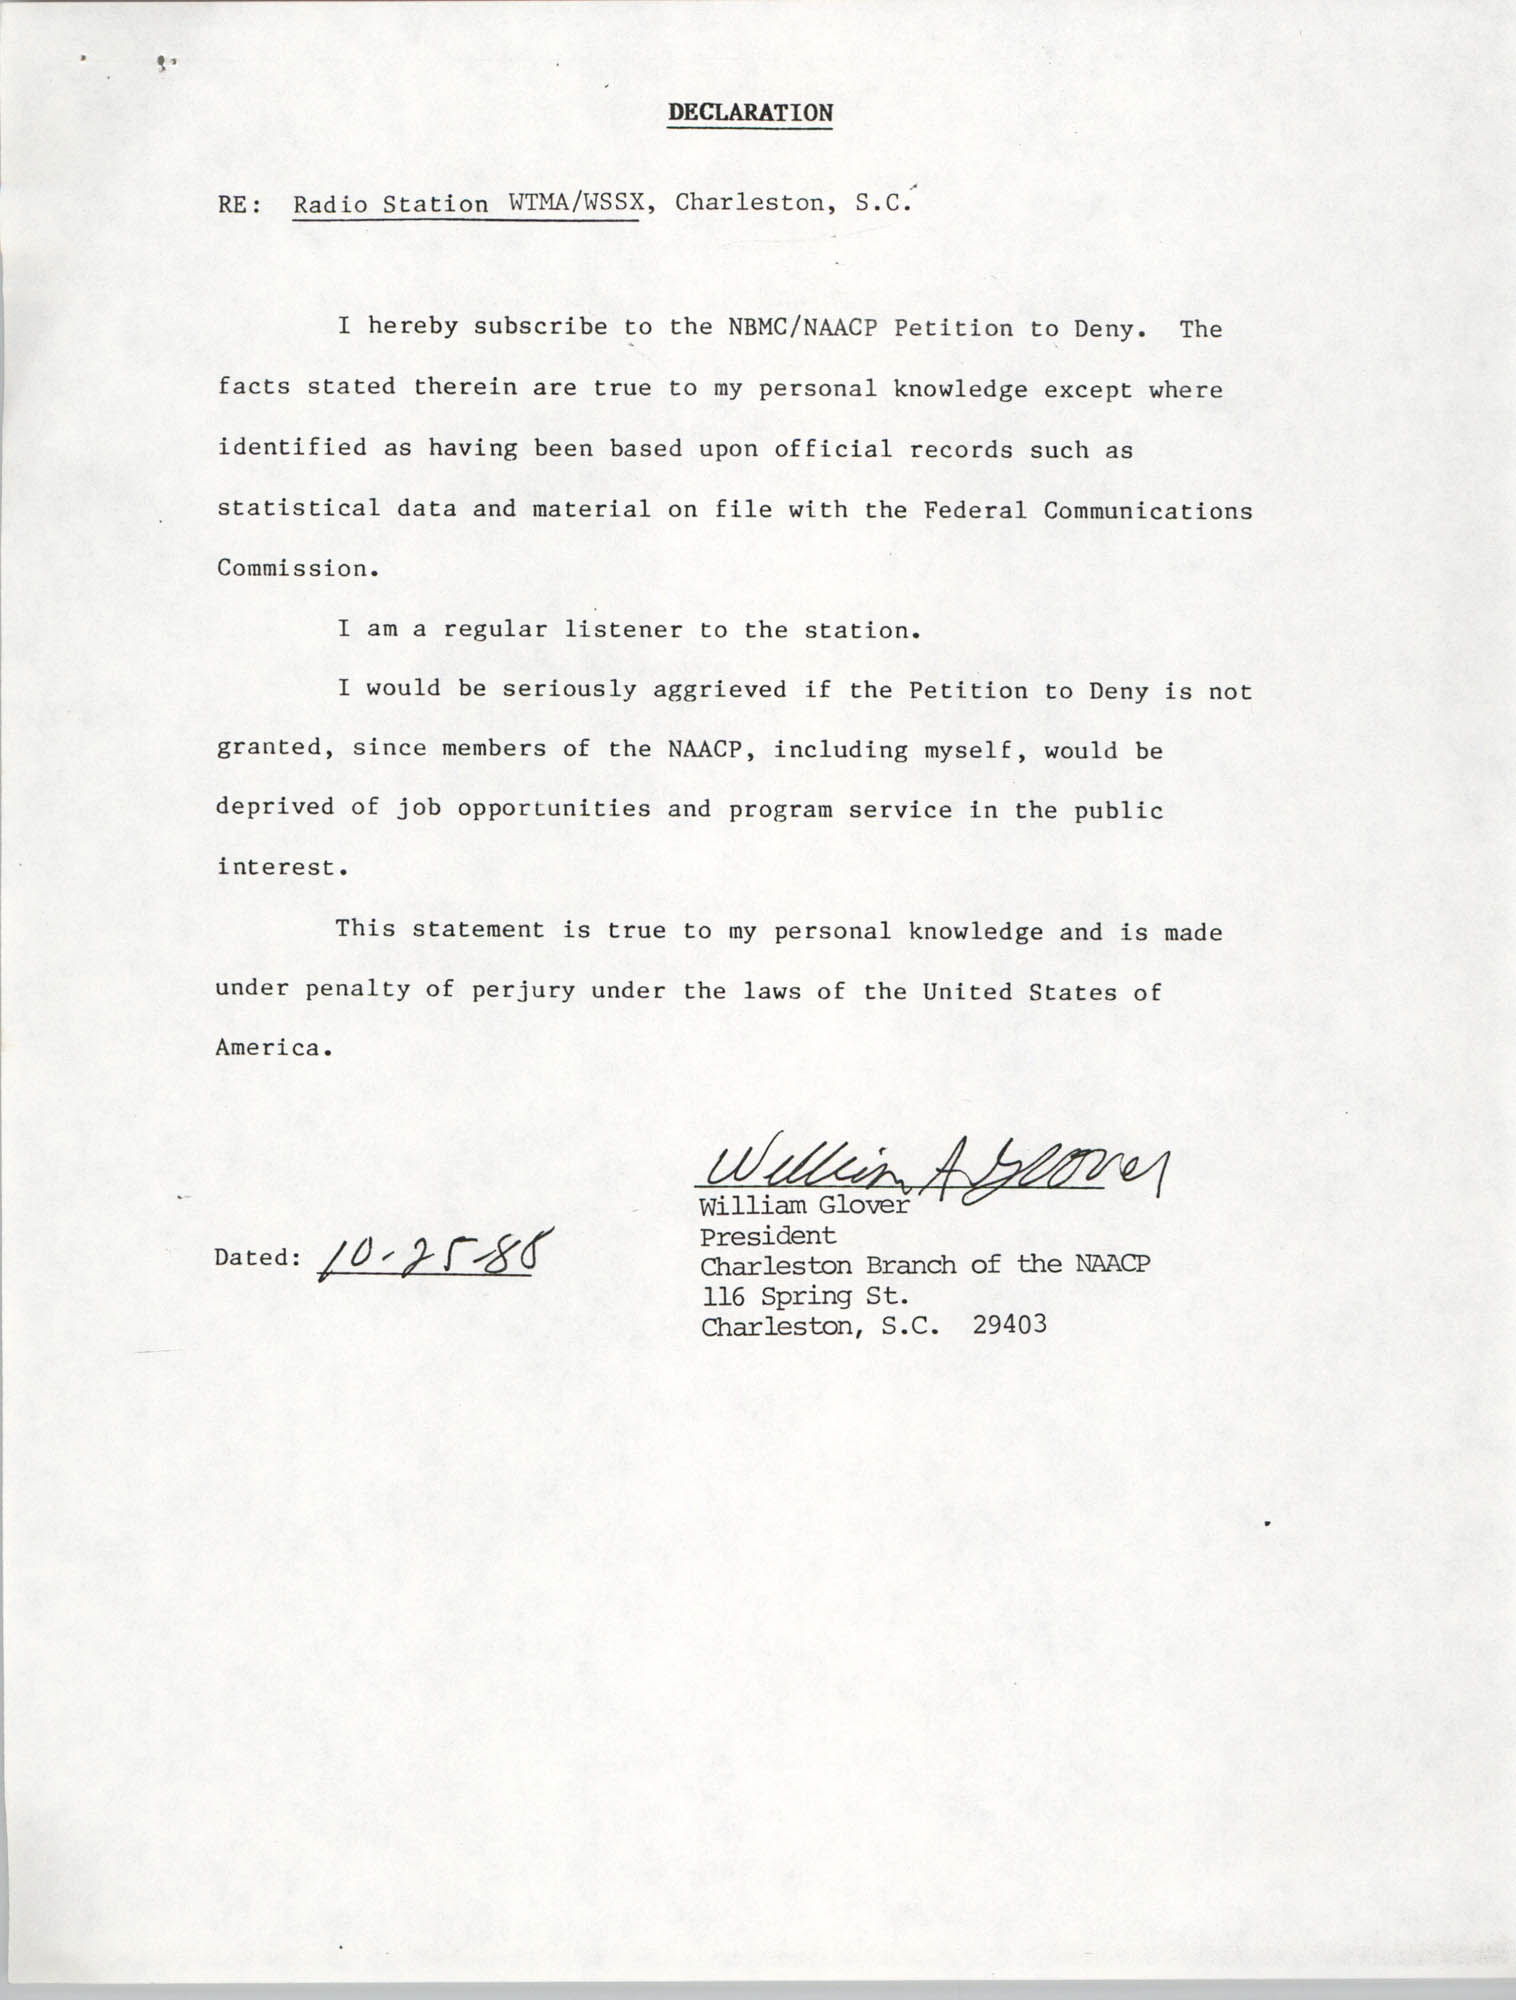 NAACP Petition Submitted Before the Federal Communications Commission, Declaration from William Glover